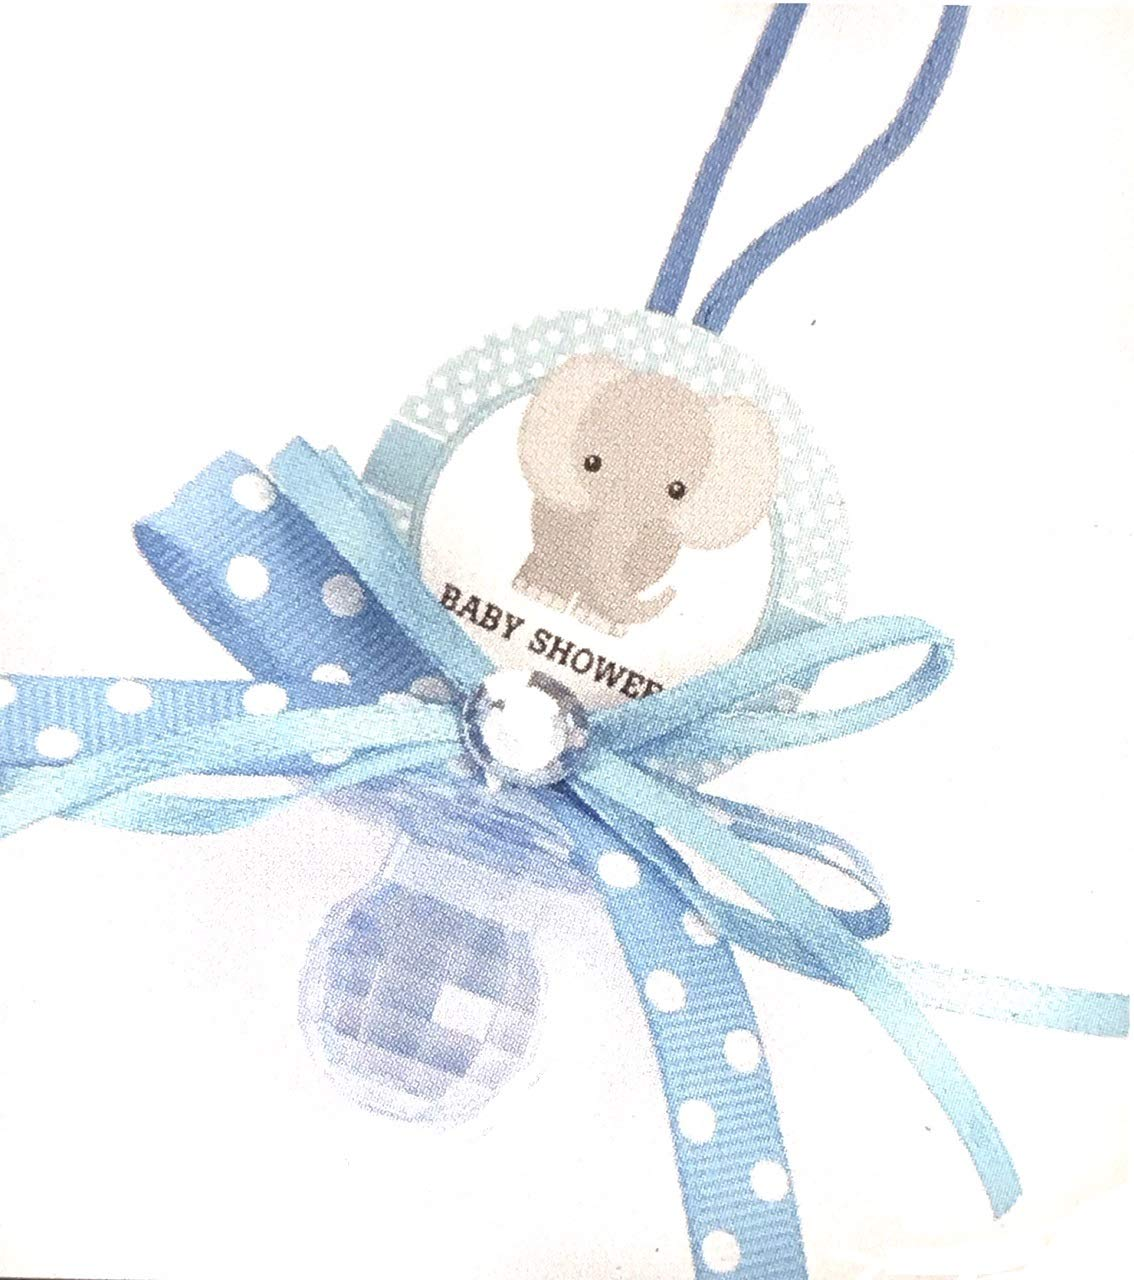 Blue Elphant 12 Pacifier Necklaces Baby Shower Game Favors Prizes Boy Decor by OOKi